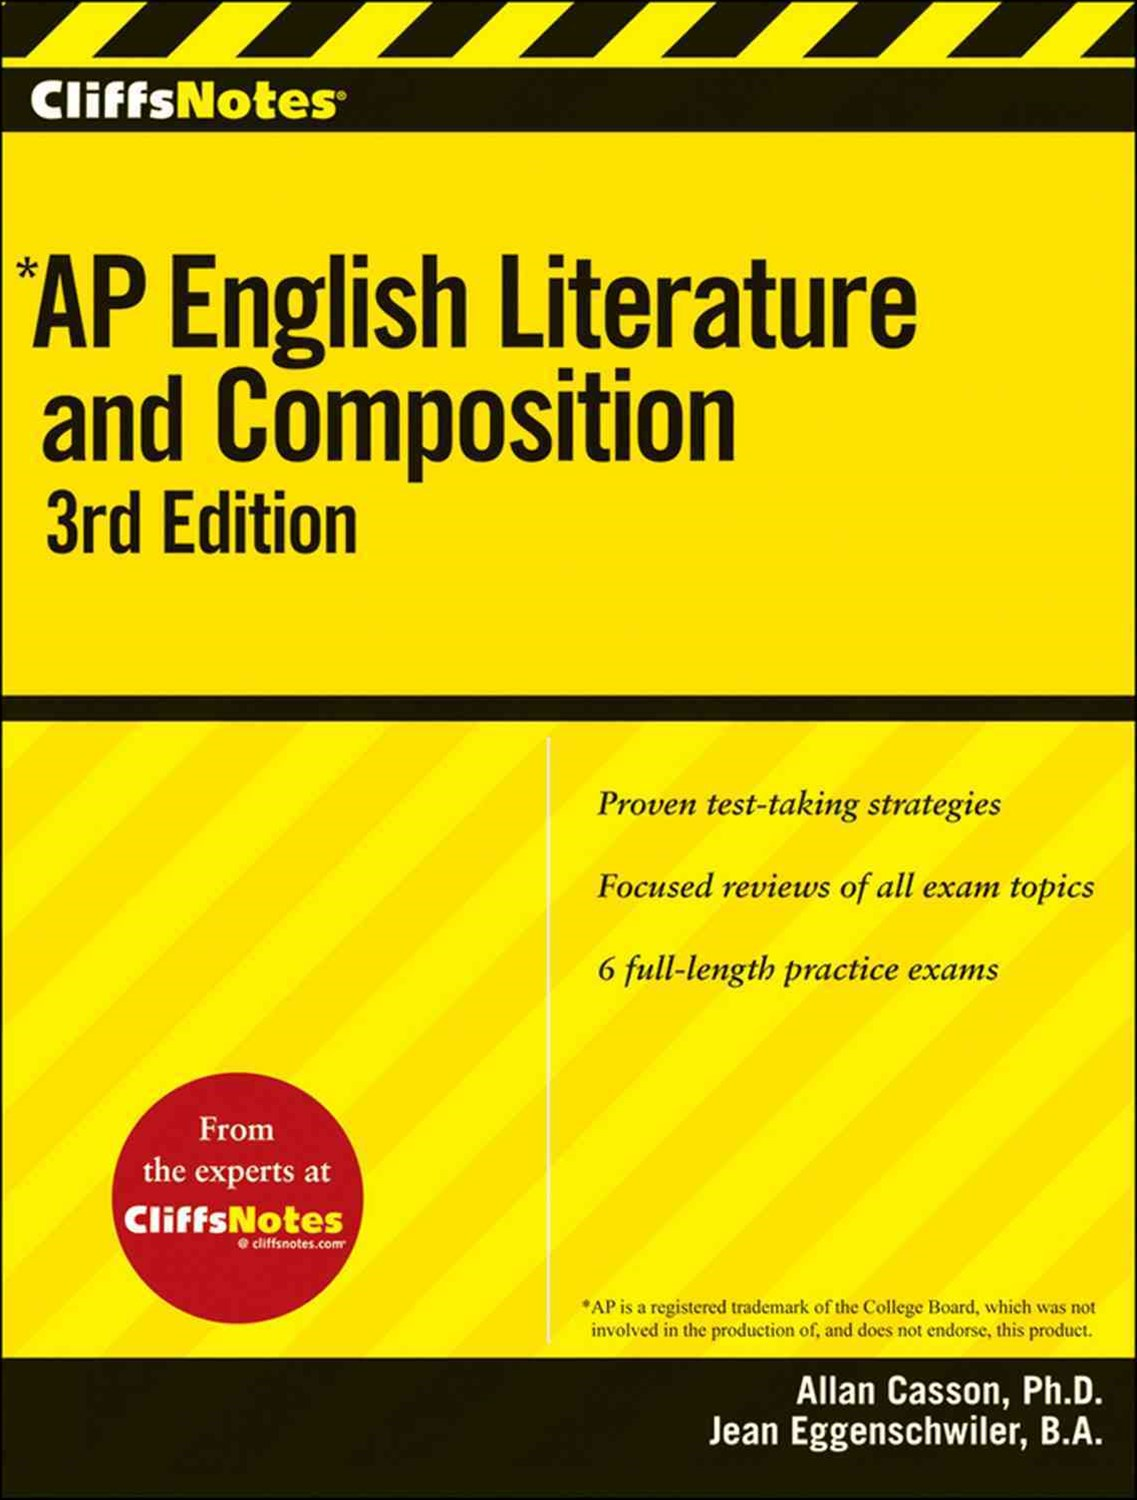 CliffsNotes AP English Literature and Composition: 3rd Edition